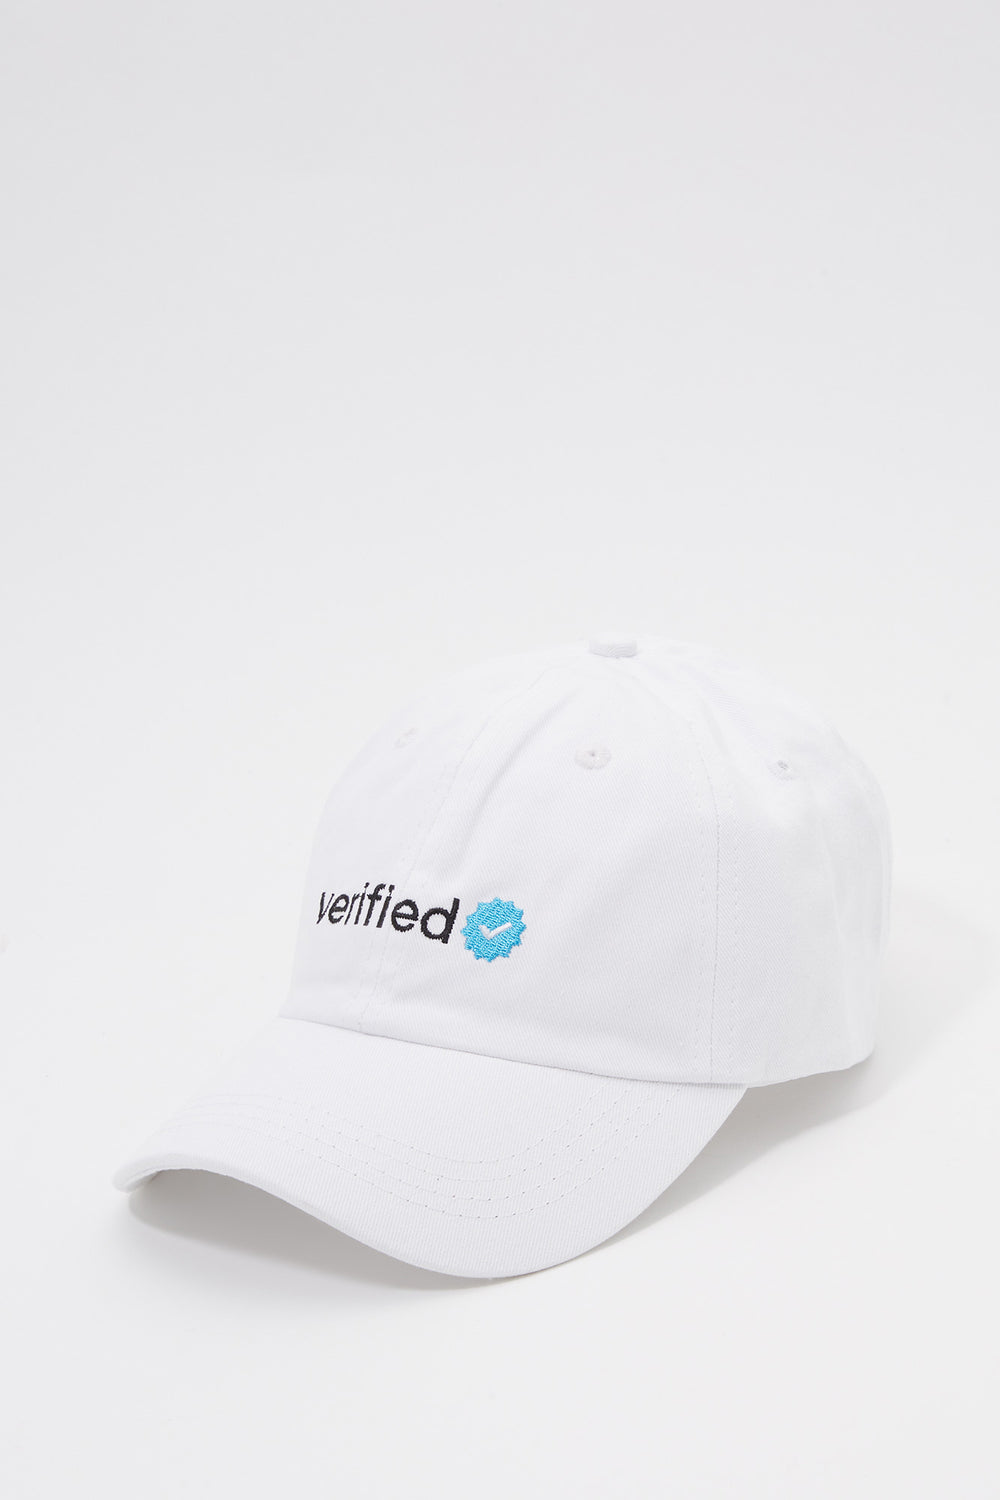 Verified Baseball Hat White